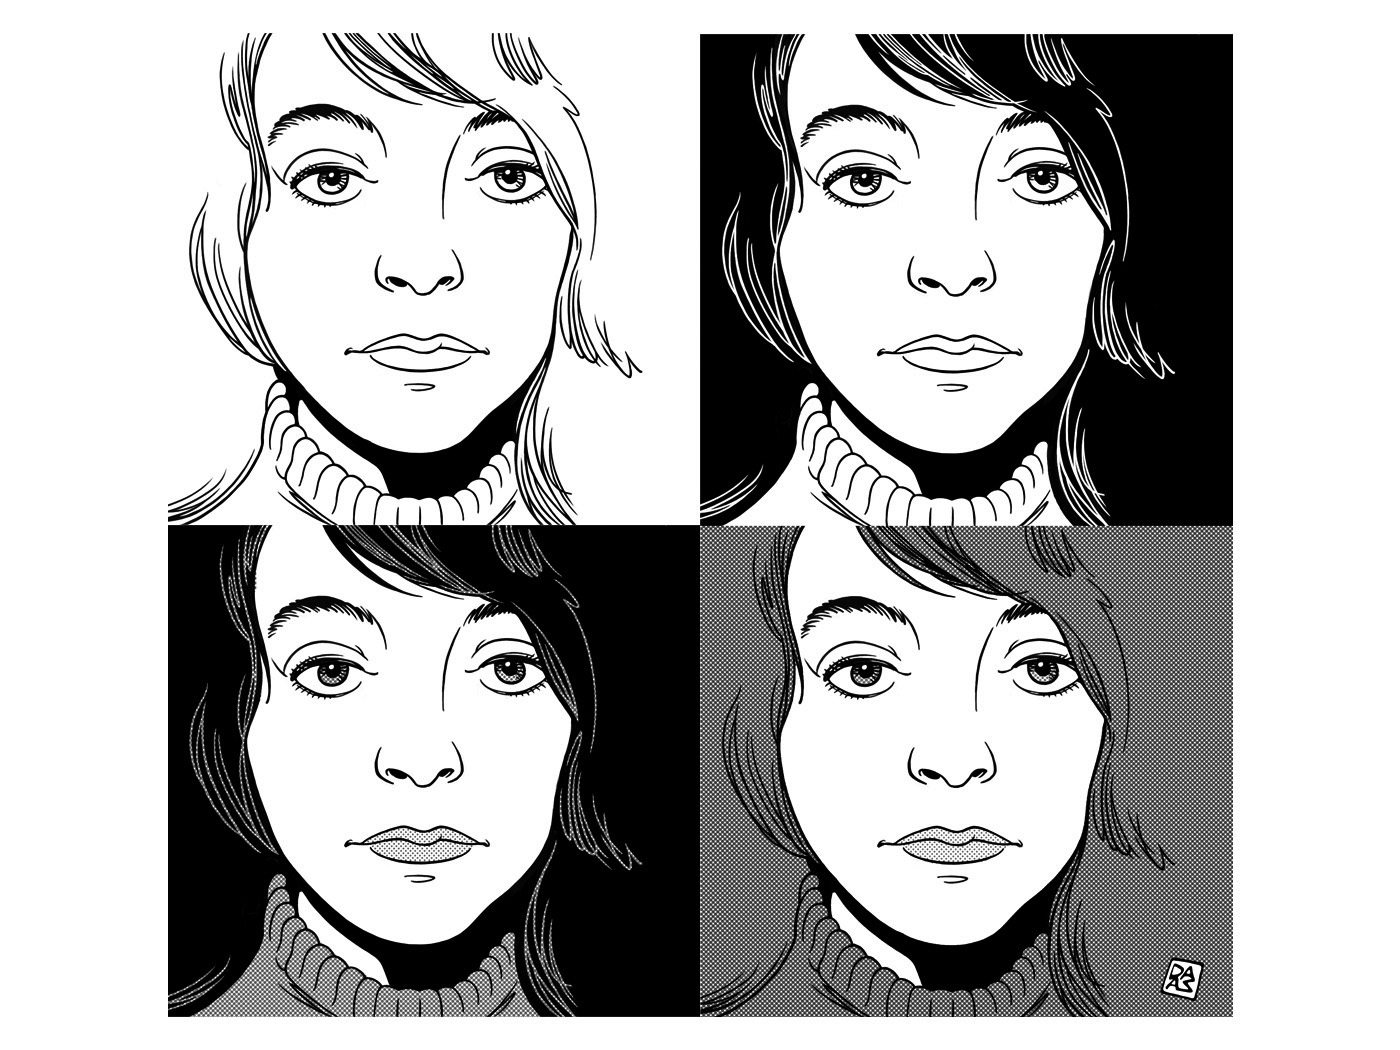 four-square-portrait-of-a-woman-by-daza